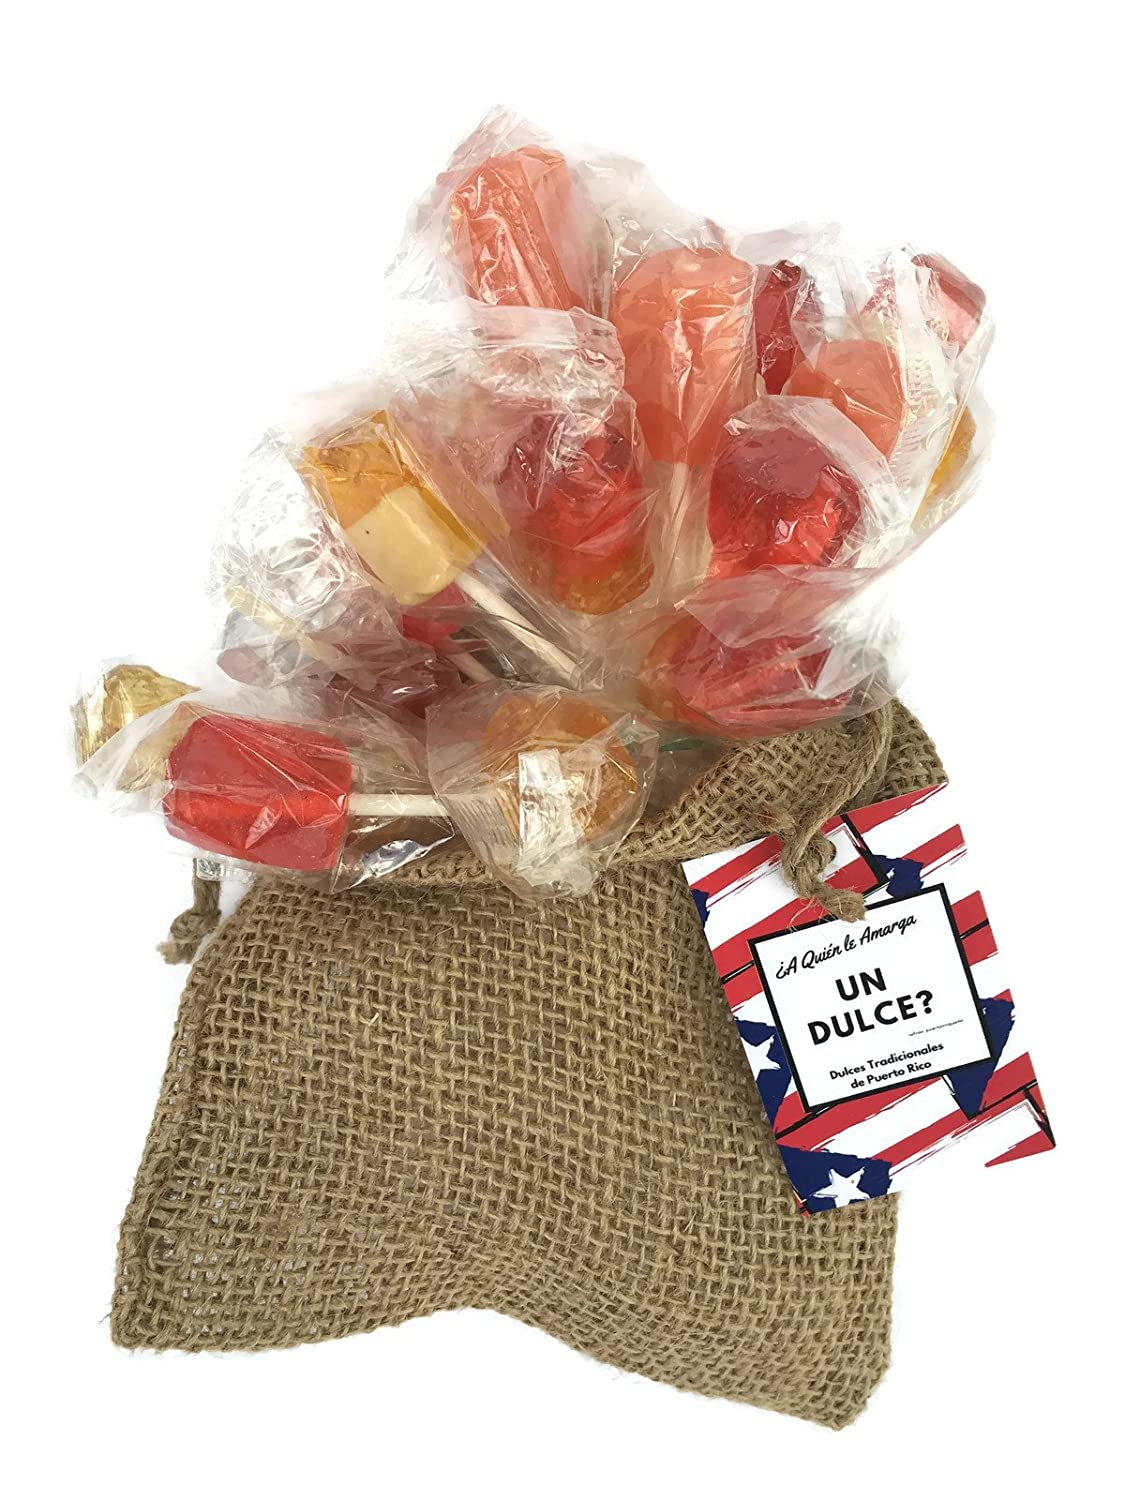 Amazon.com : Puerto Rican Candy Pilones Bundle Assortment with Sesame (Ajonjoli), Strawberry, Coconut-Pineapple, Strawberry-Coconut, Strawberry-Sesame and ...